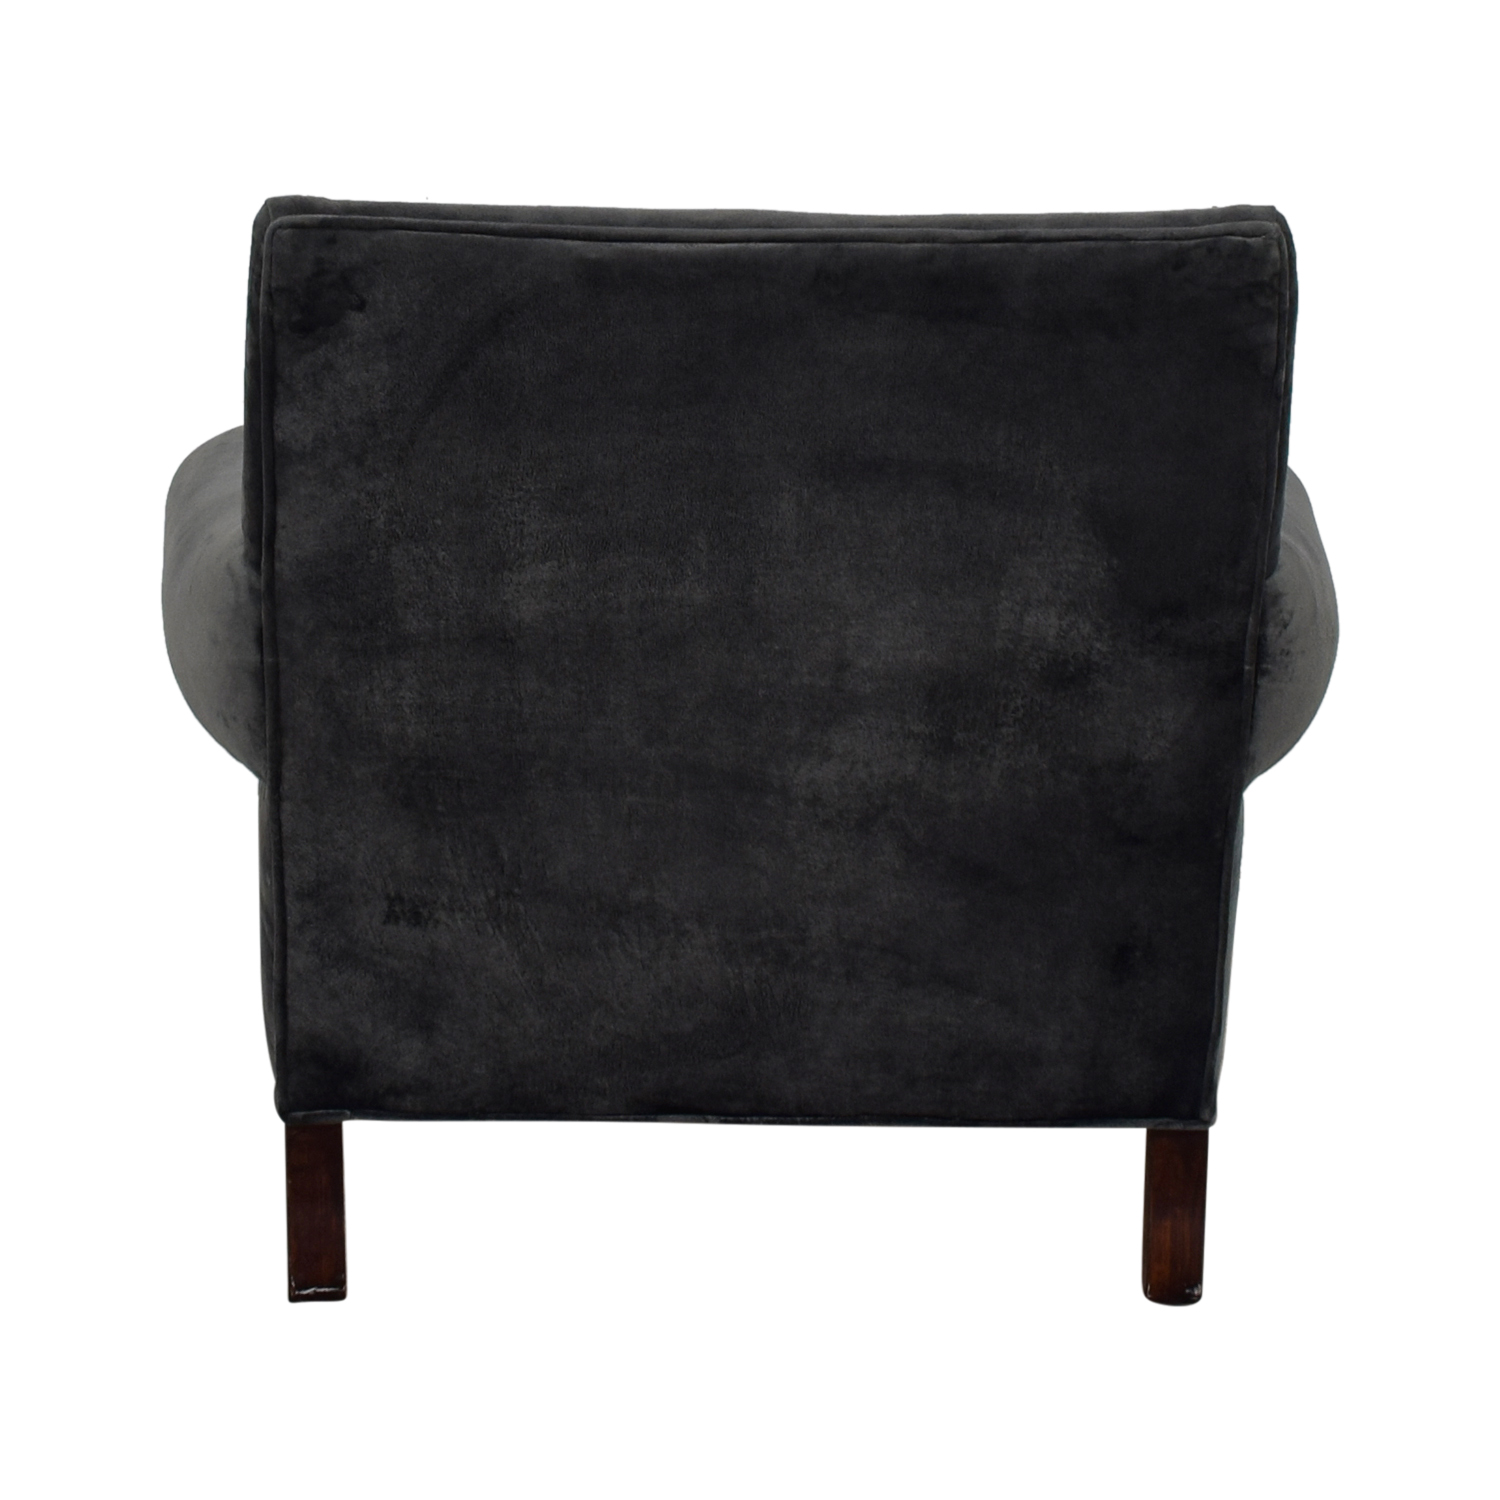 Performance Velvet Upholstered Chair for sale